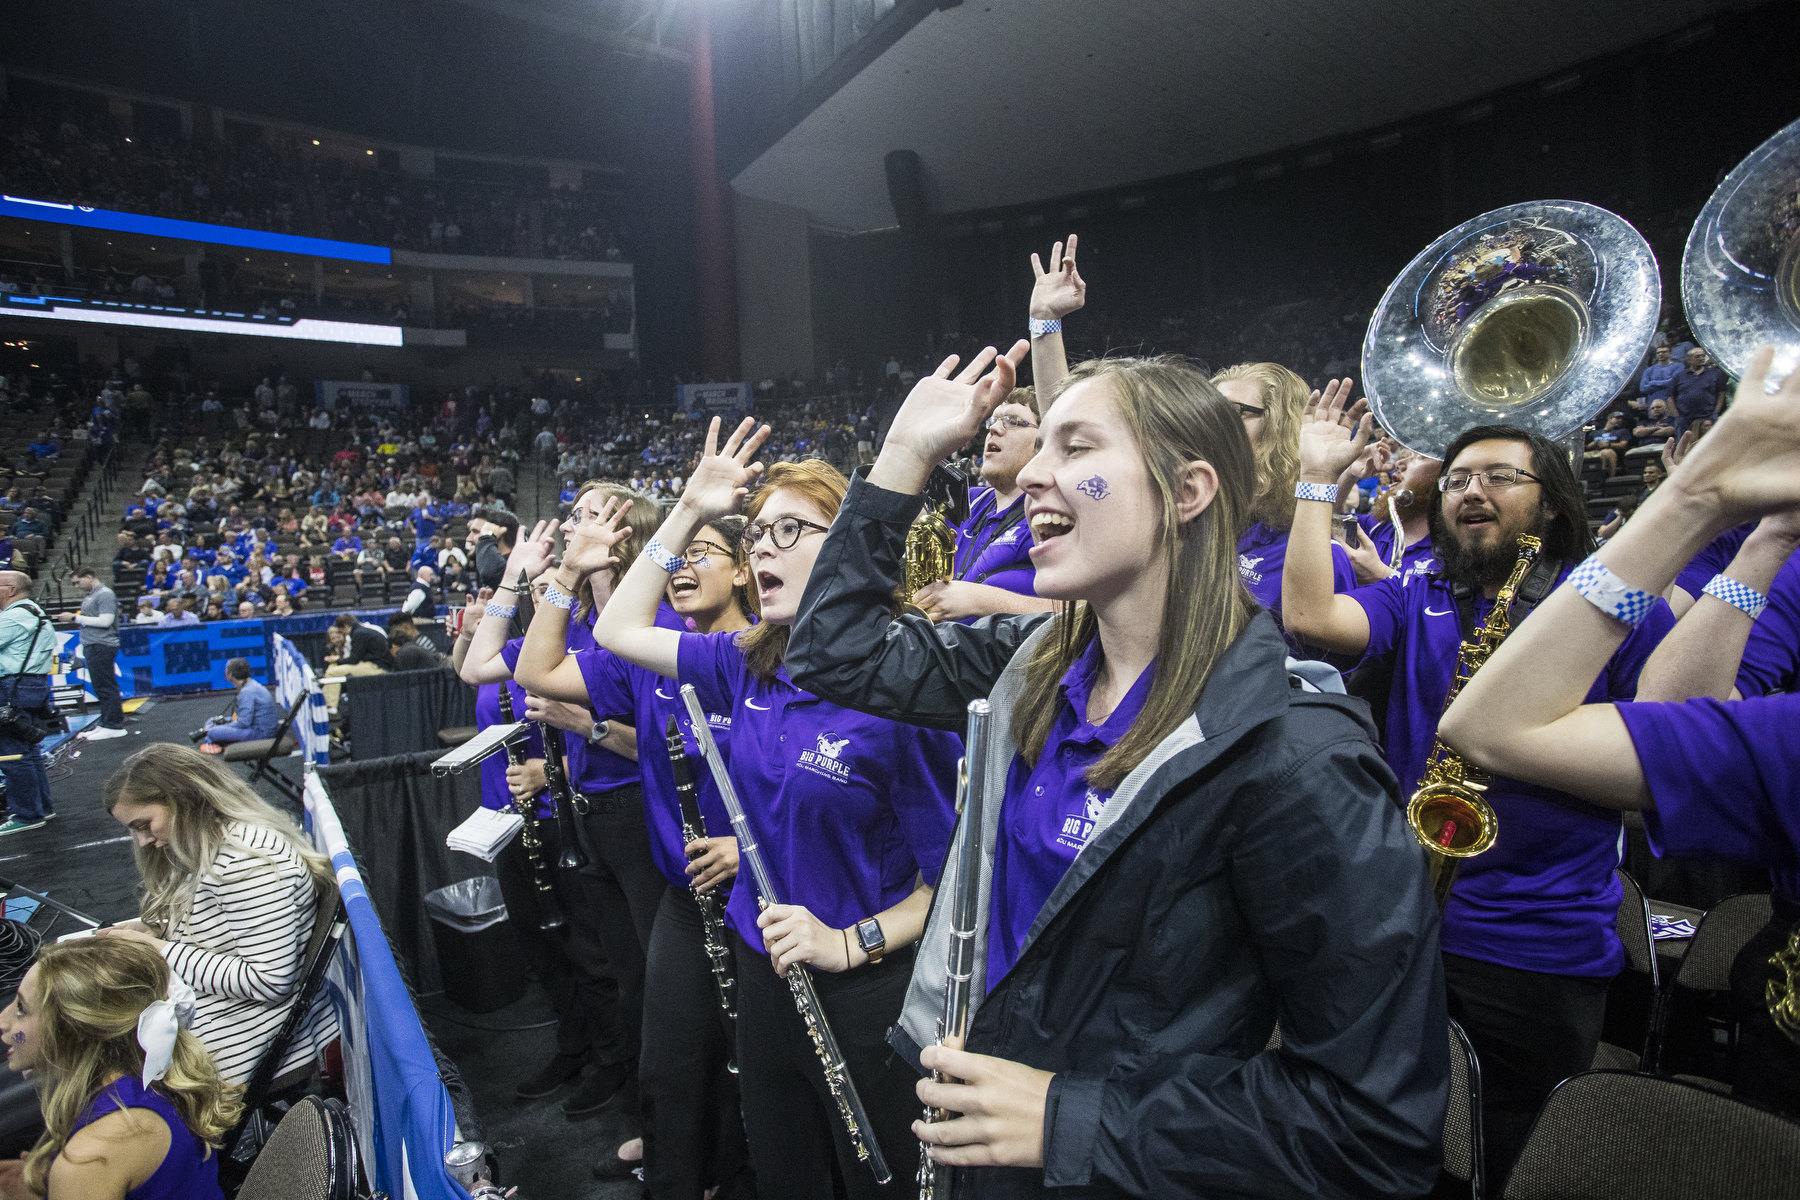 Between tunes, Big Purple basketball band members show their school spirit during Thursday night's ACU-Kentucky game in Jacksonville.